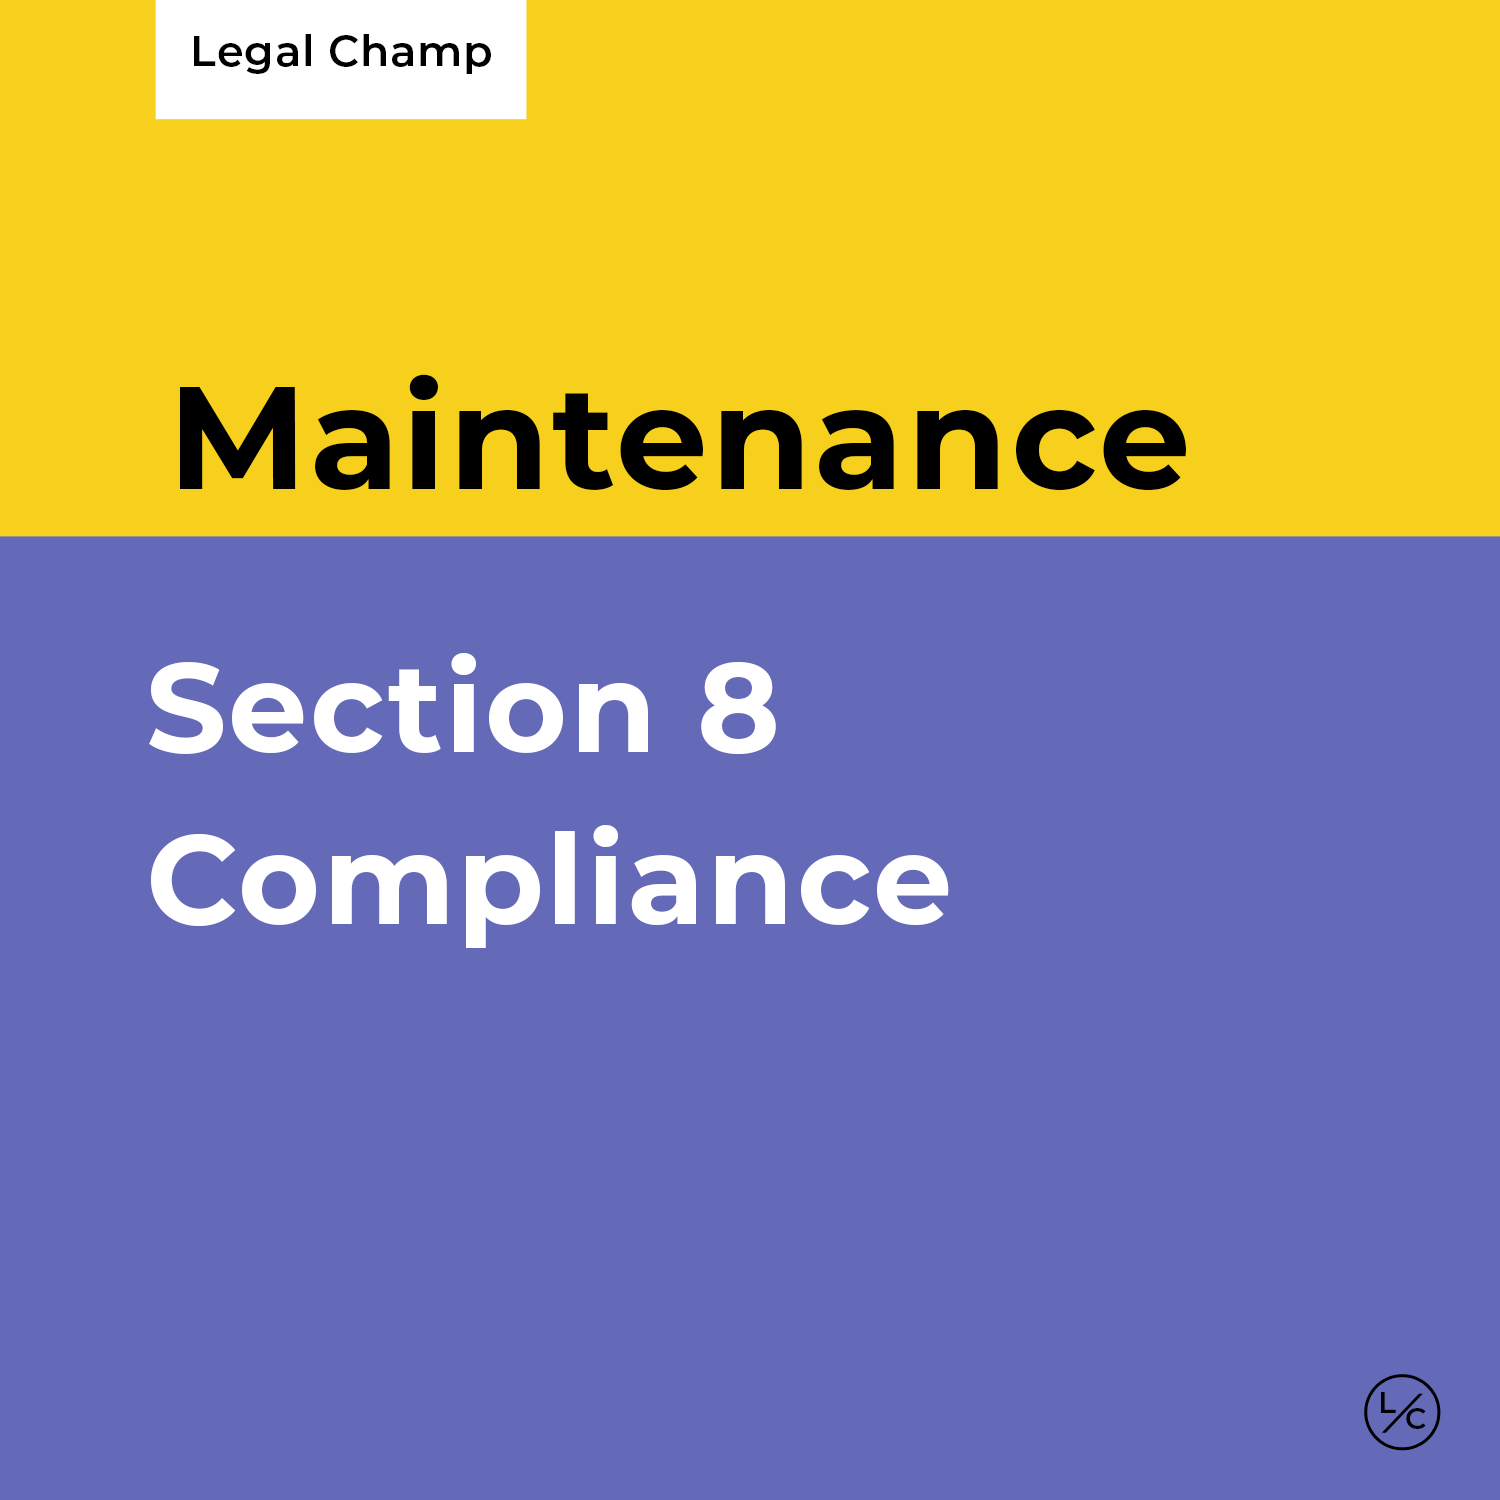 Section 8 Compliance